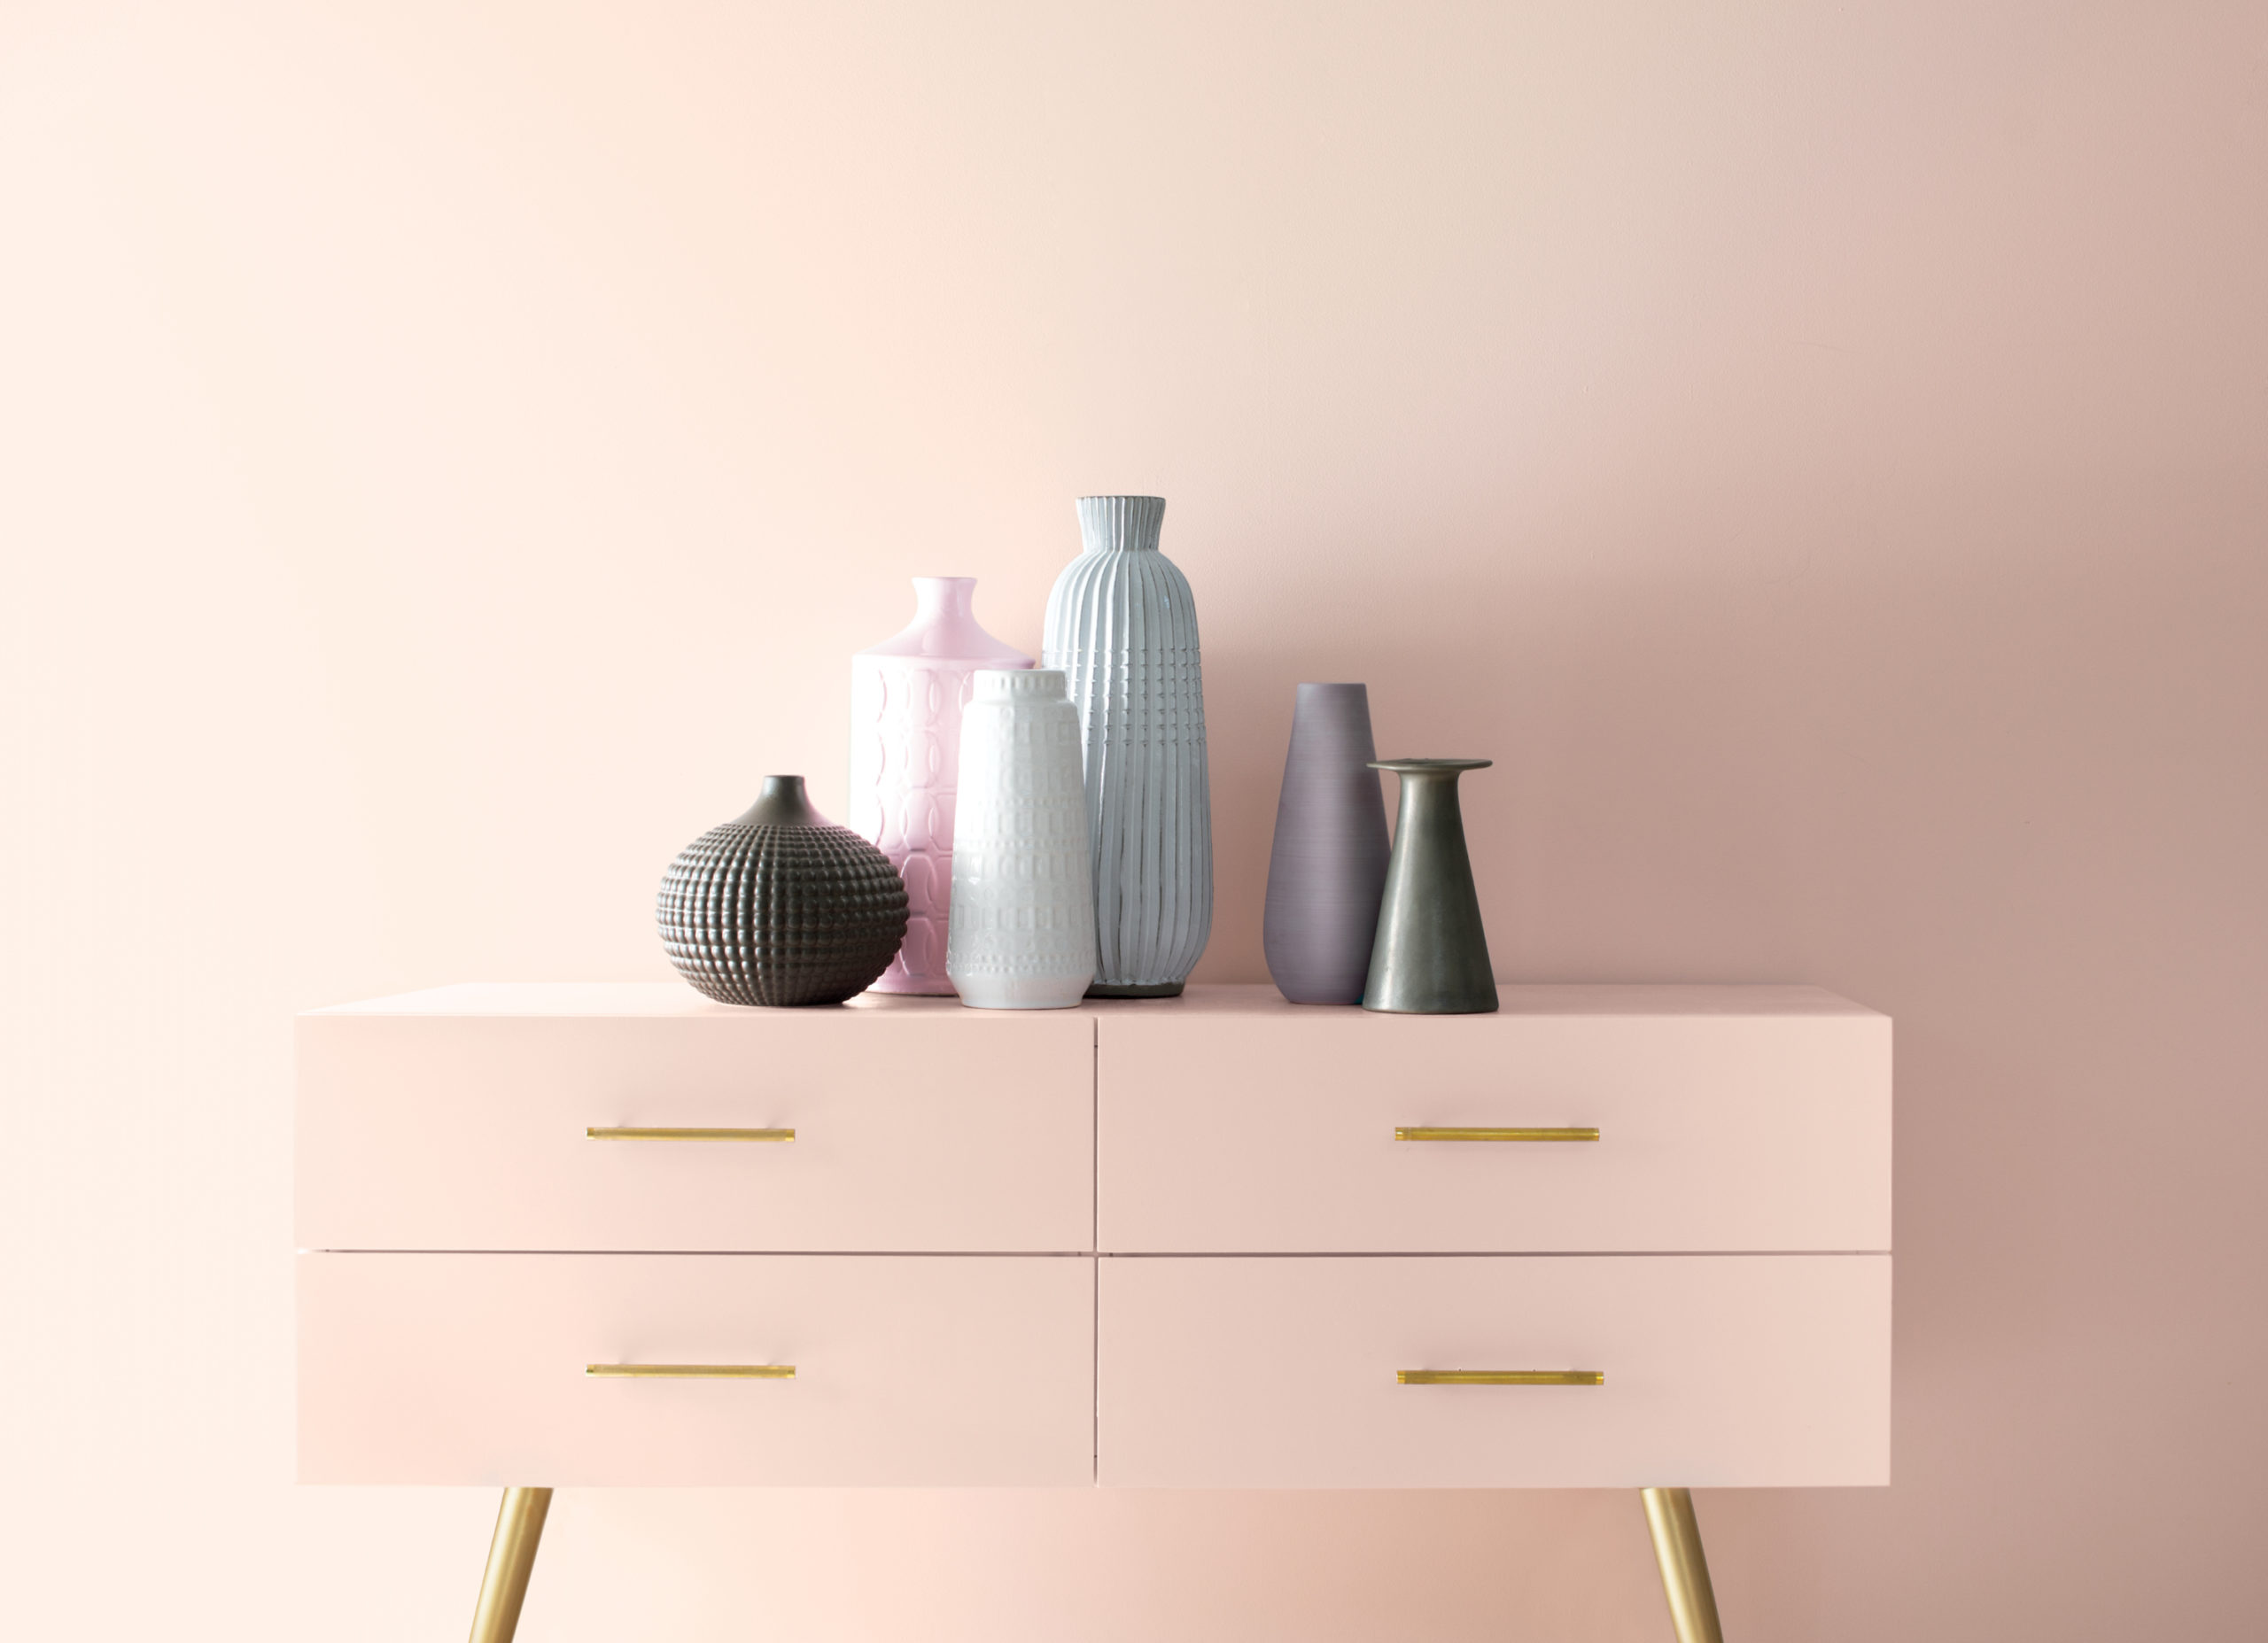 Benjamin Moore's First Light creates a soft palette and backdrop